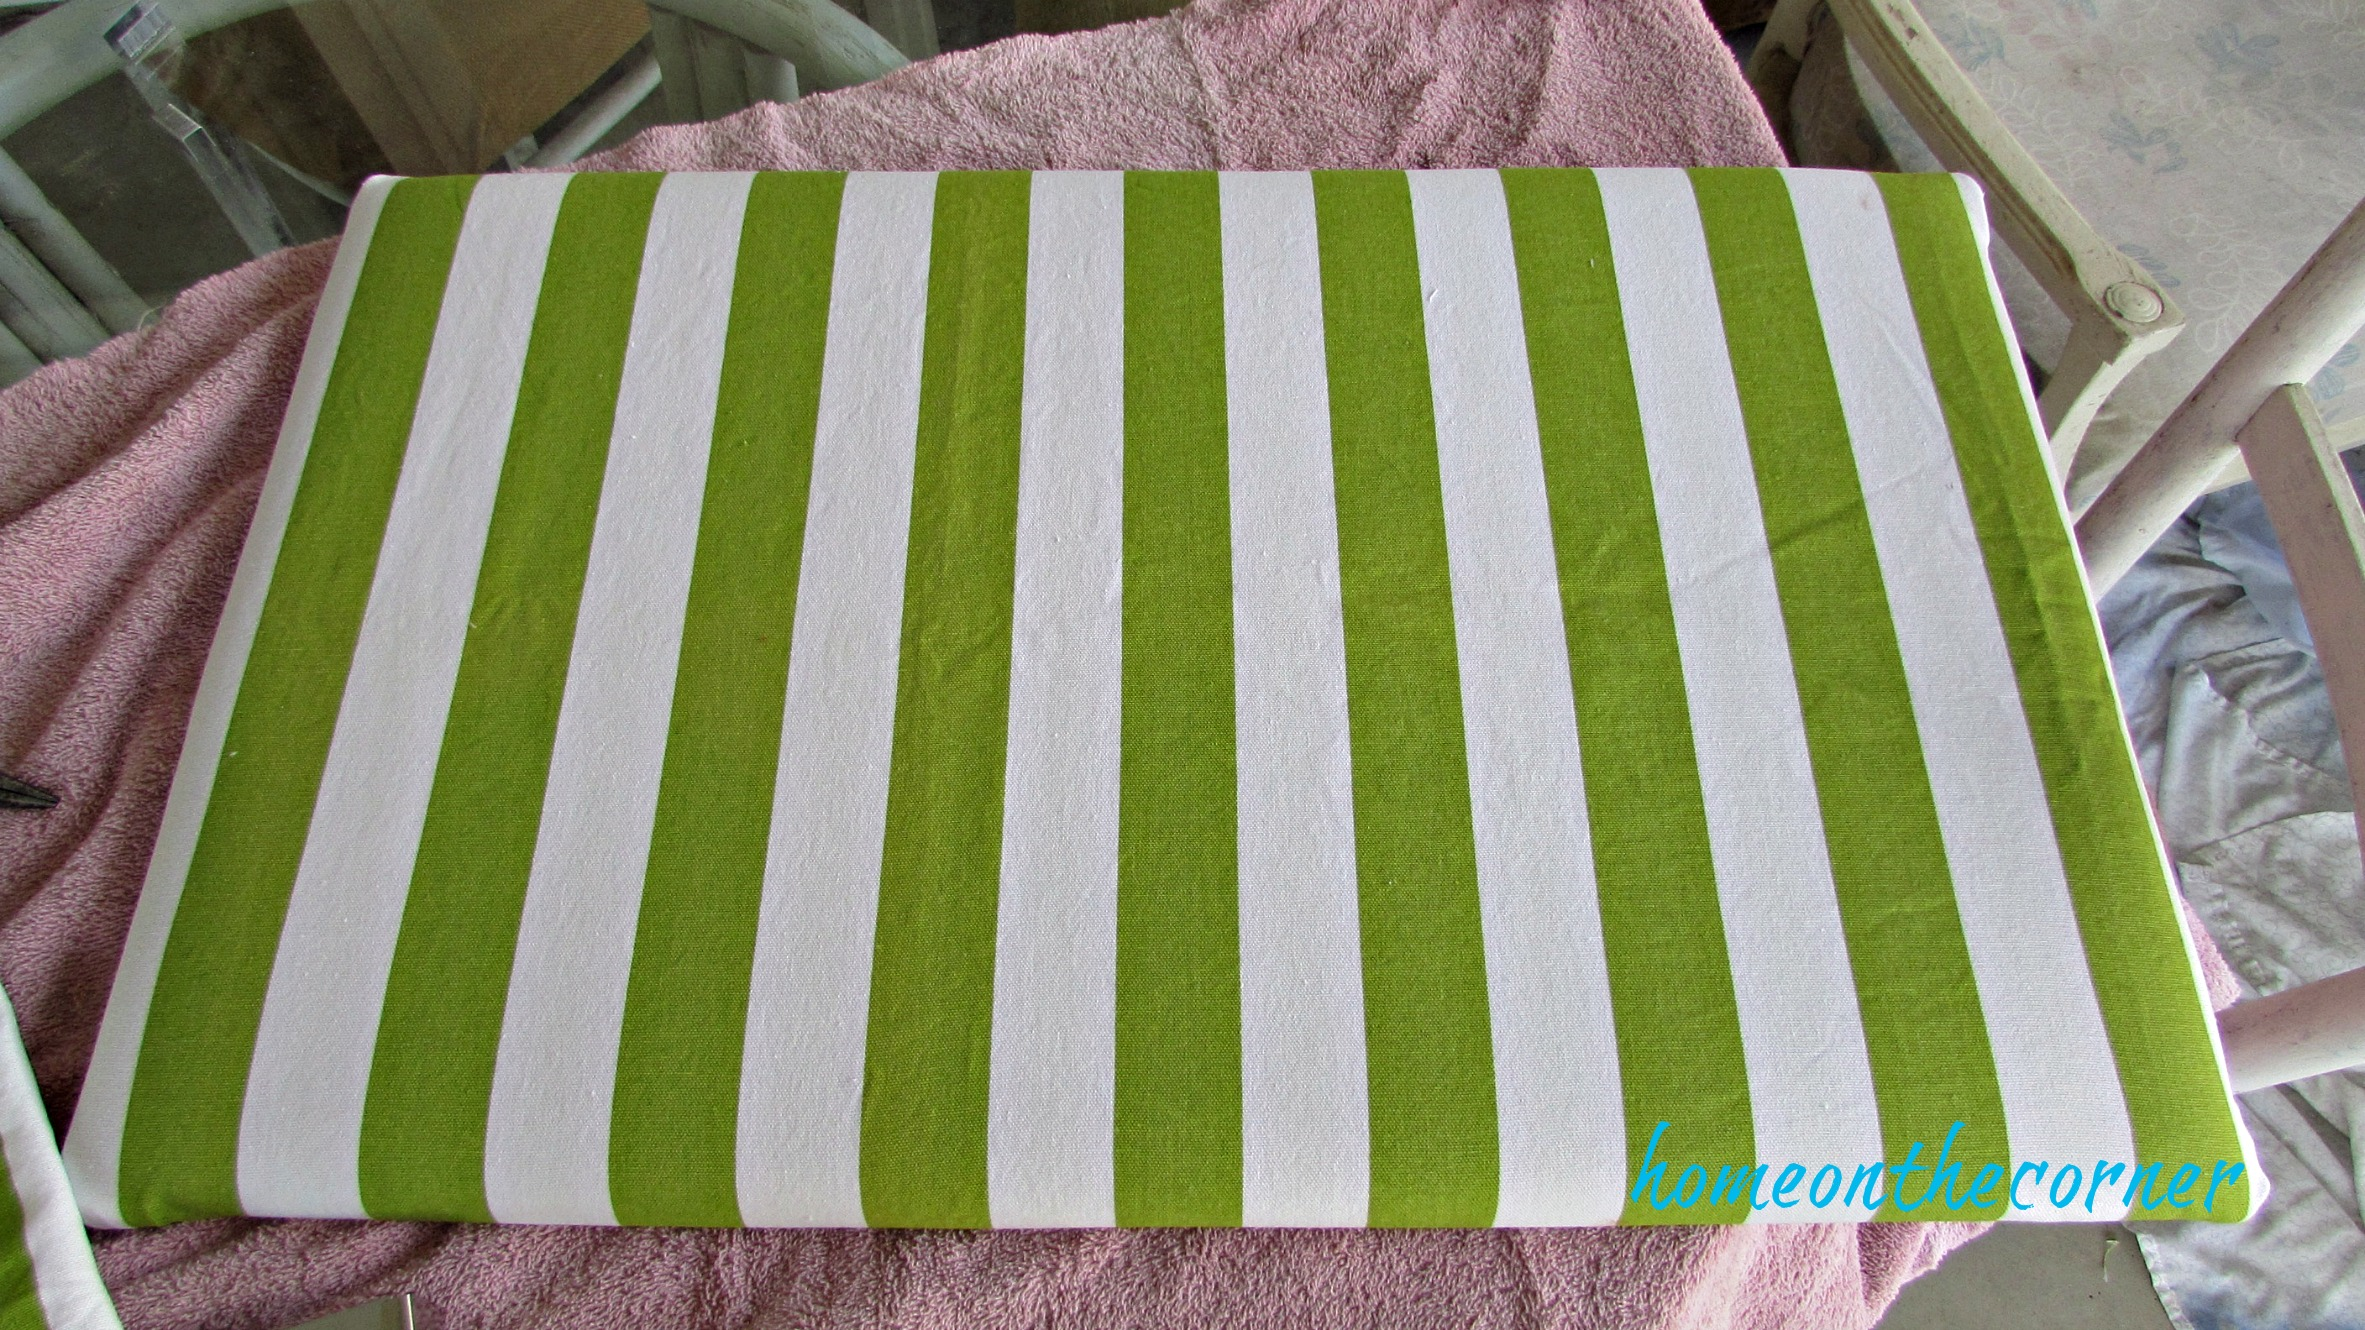 green and white striped bench top with fabric